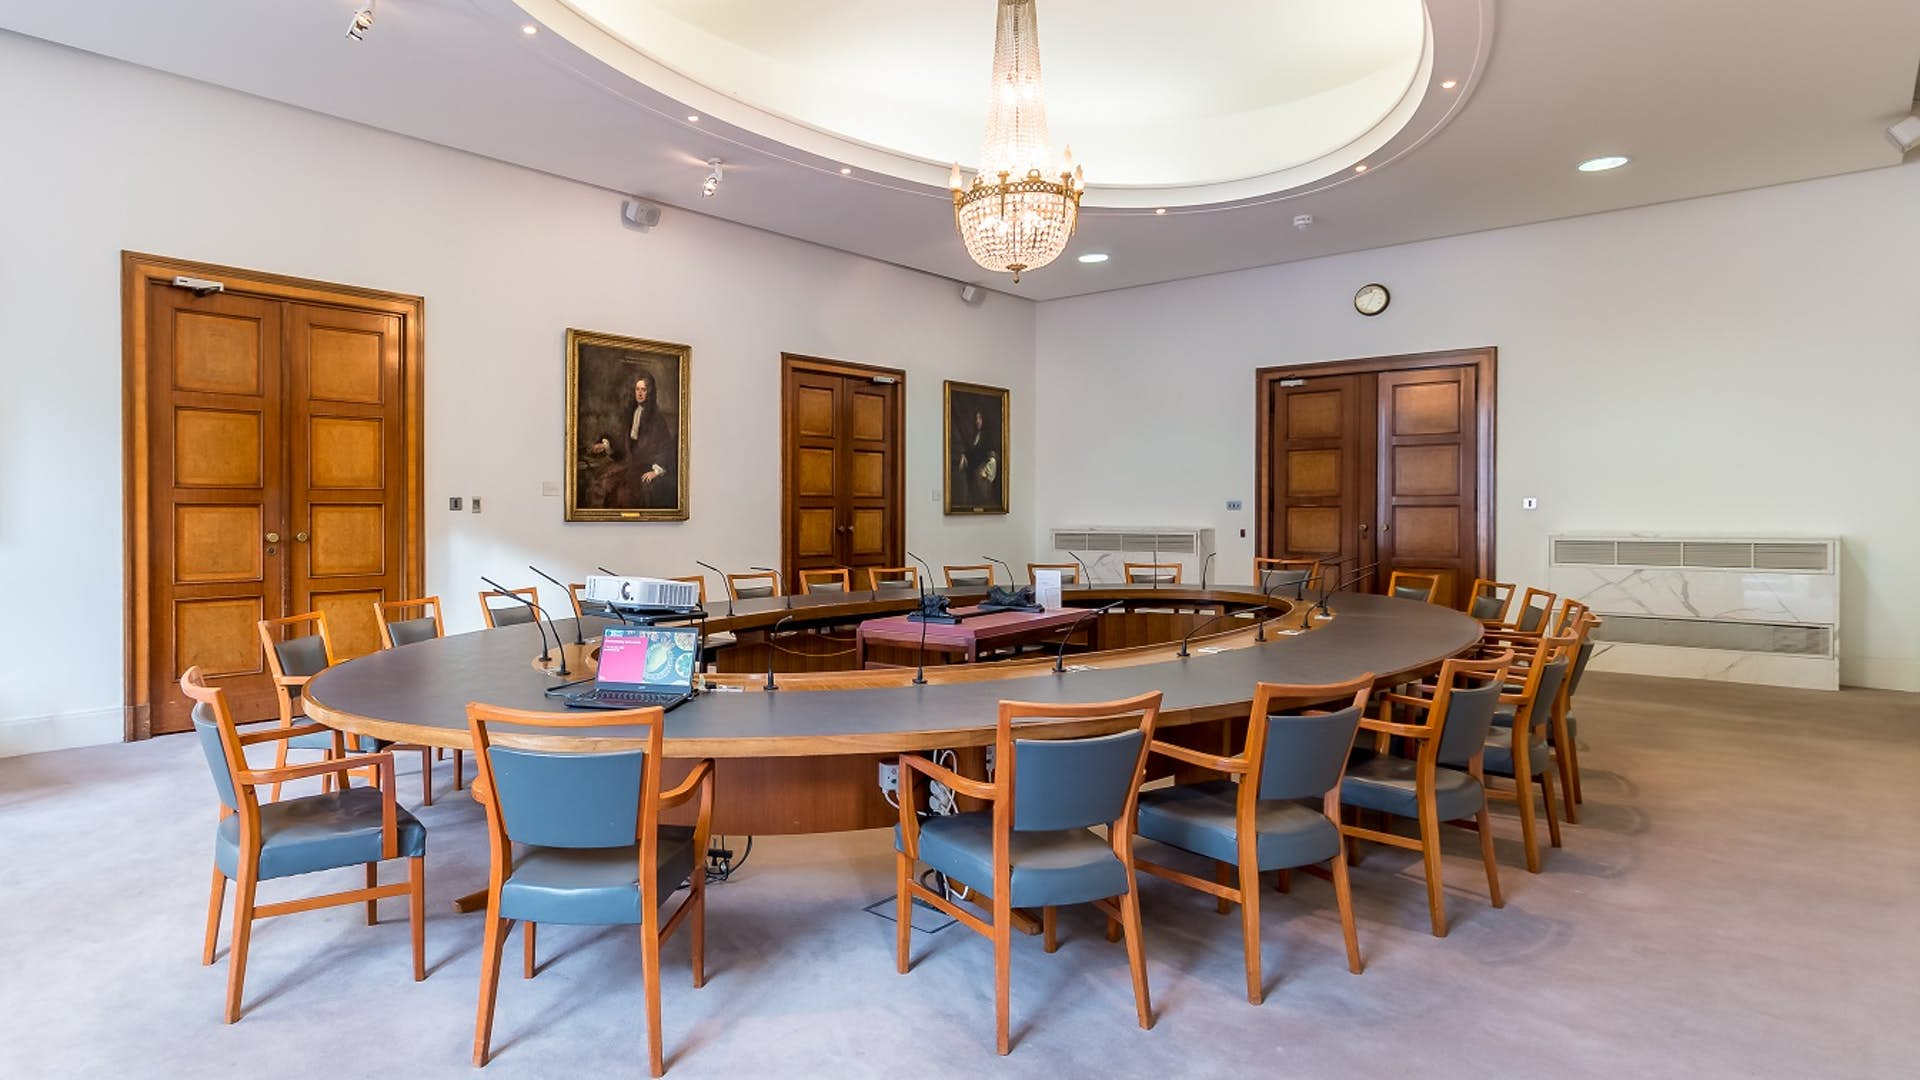 ... Hire Space - Venue hire The Council Room at The Royal Society